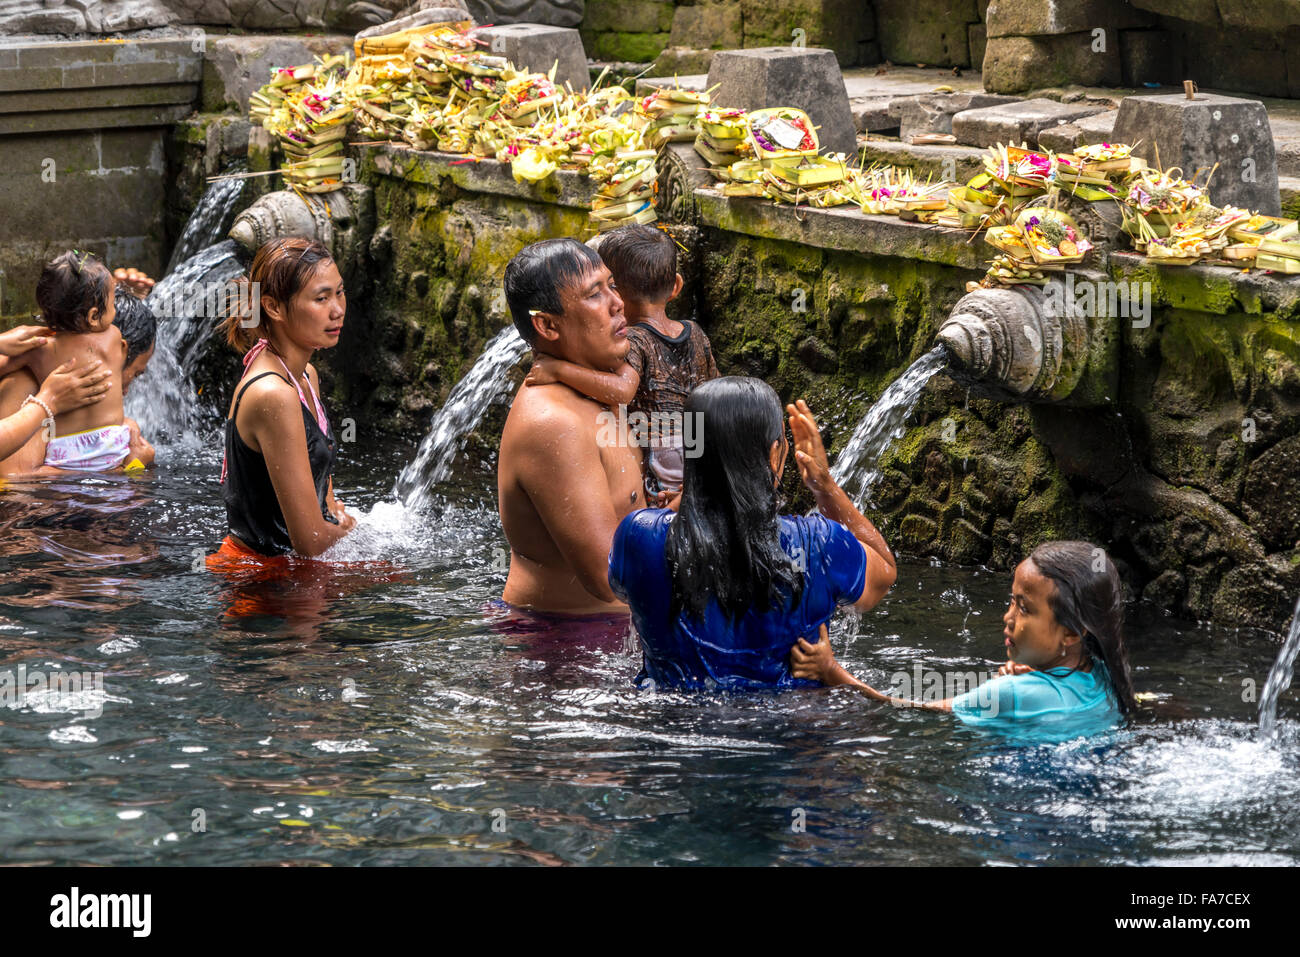 bathing structure with holy spring water of the Hindu water temple Tirta Empul near Ubud, Bali, Indonesia - Stock Image